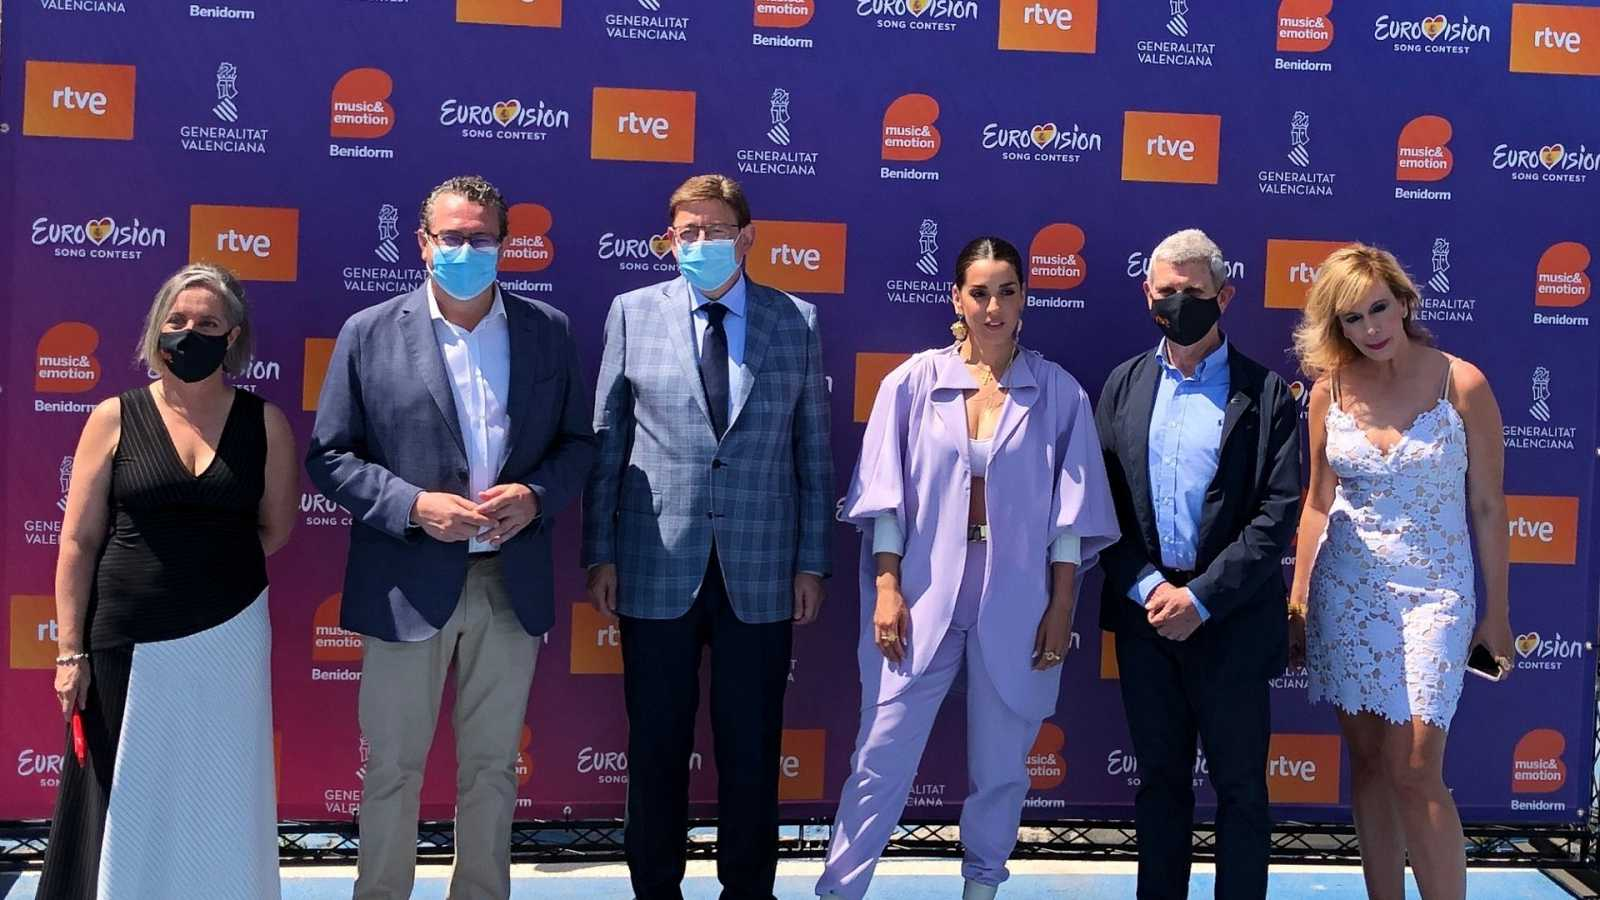 RTVE announcement about Eurovision 2022, from Benidorm